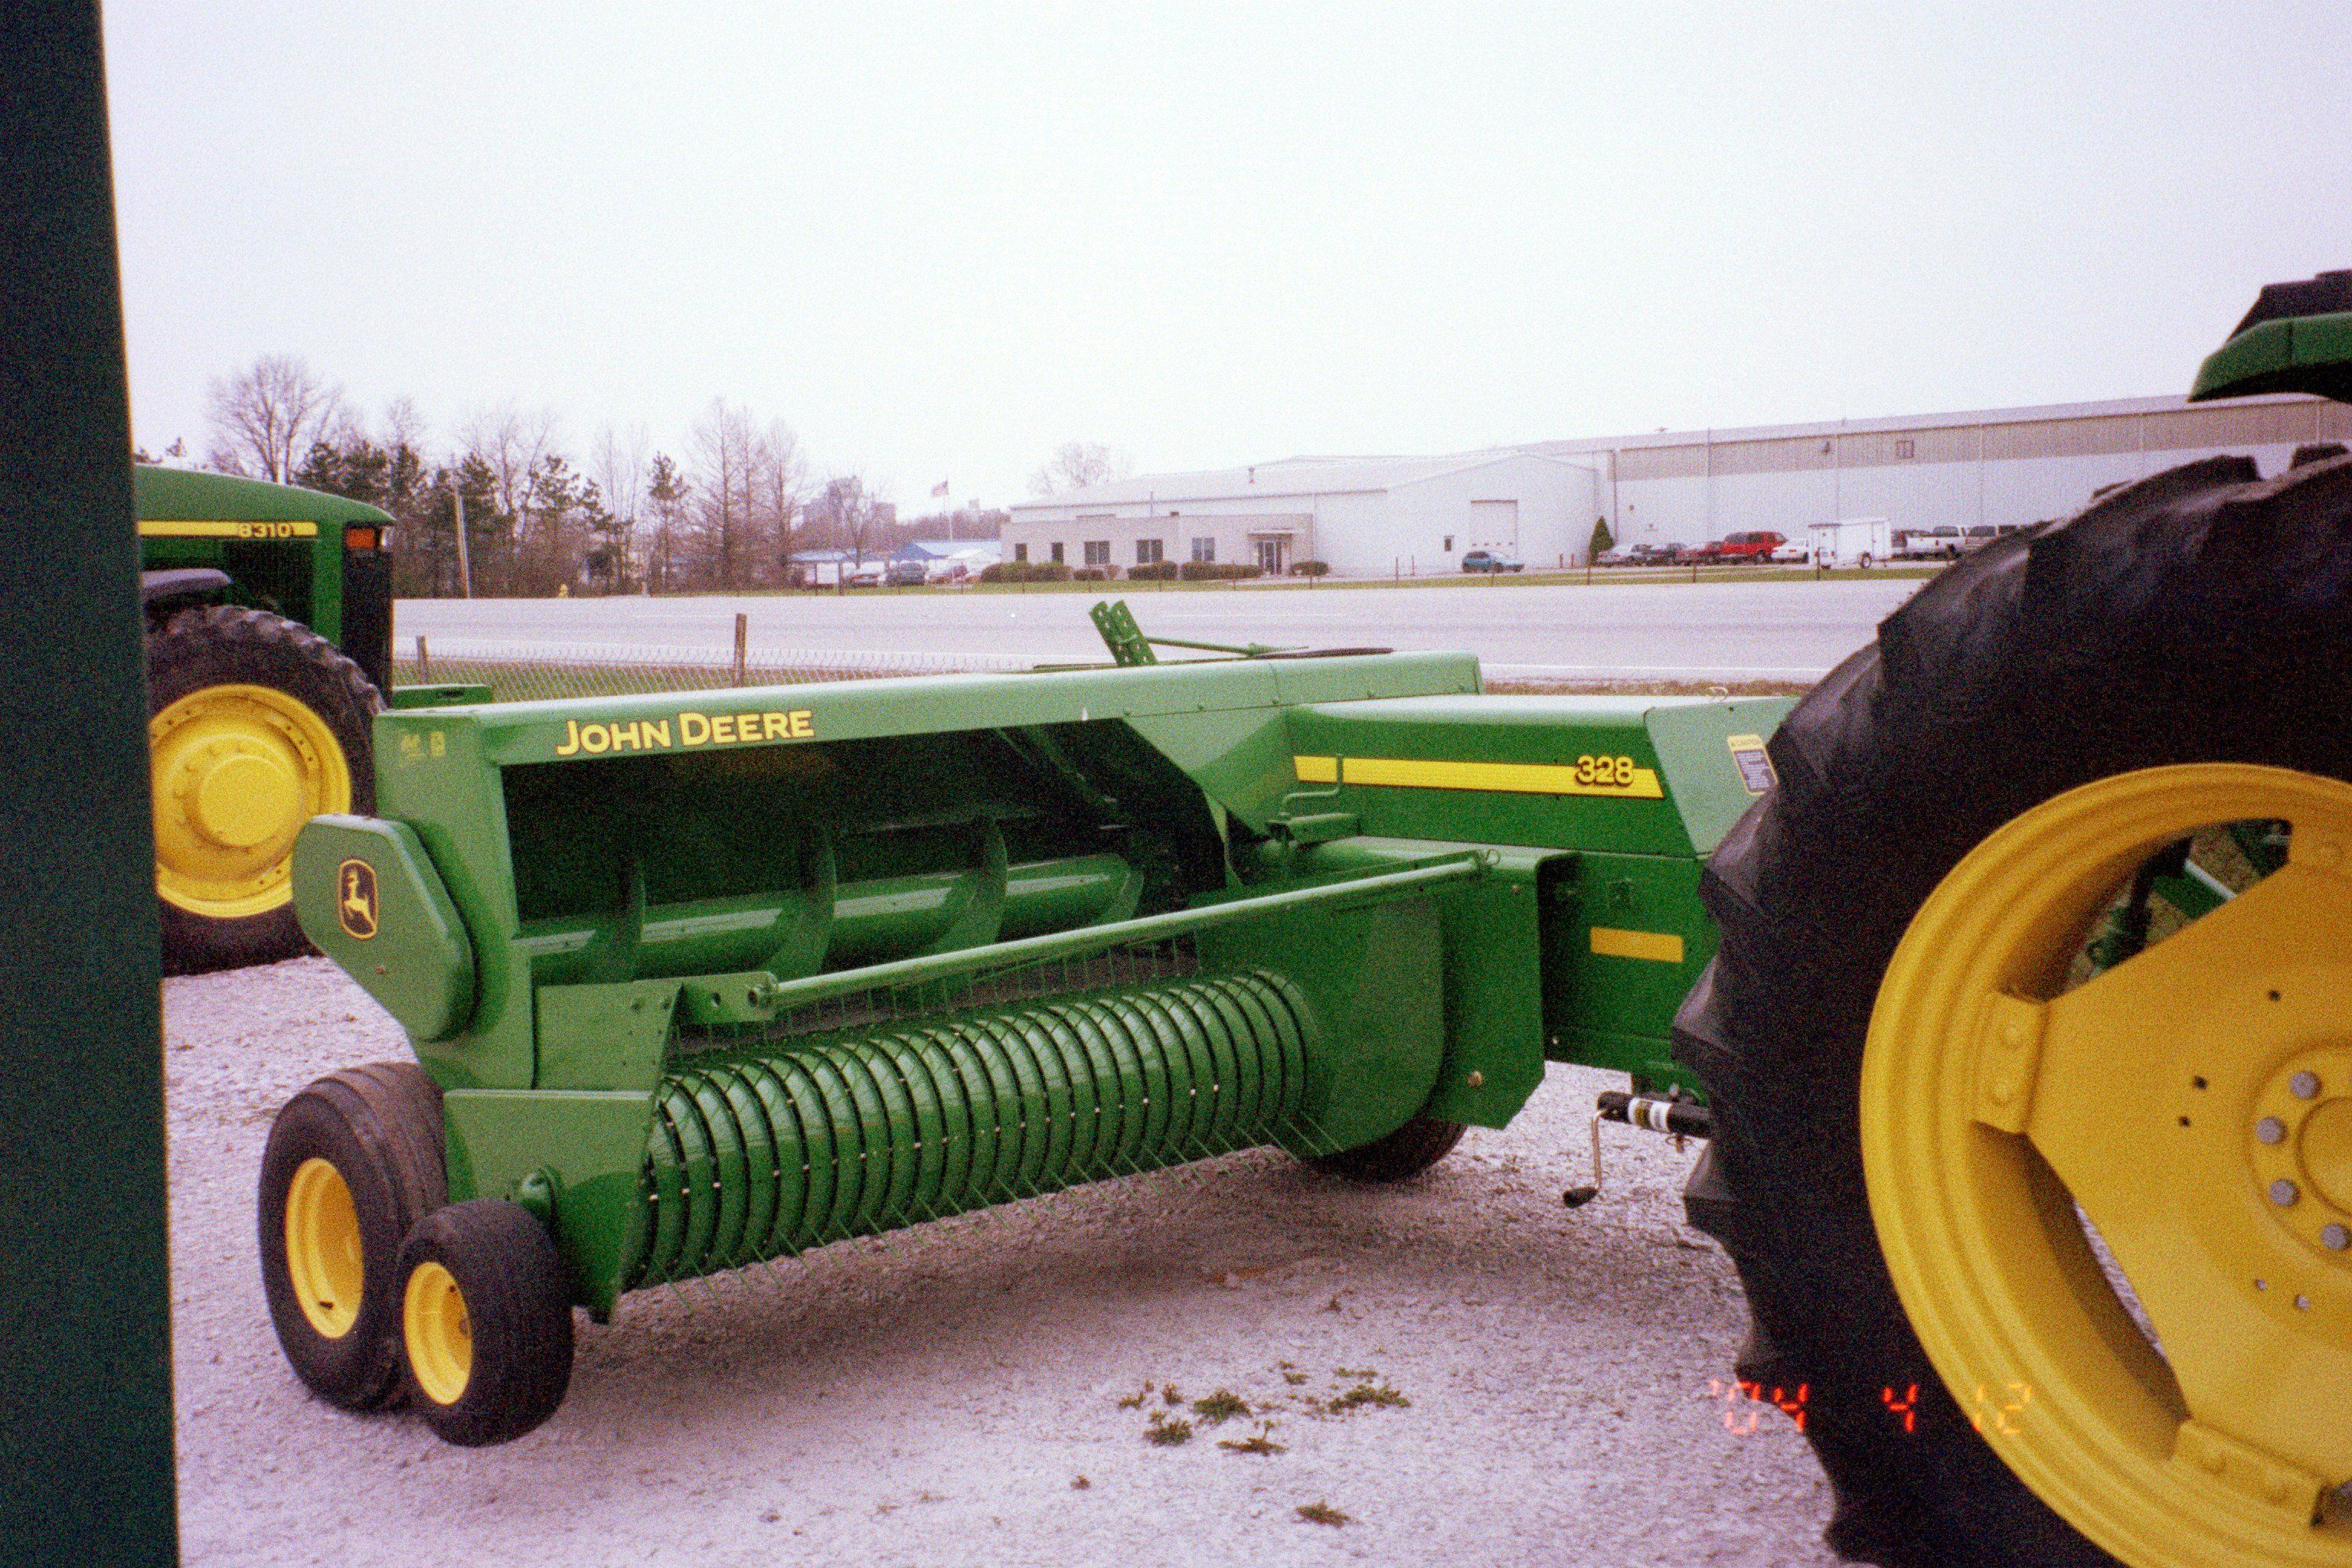 John Deere 328 square baler | JD Farm Equip-my pictures